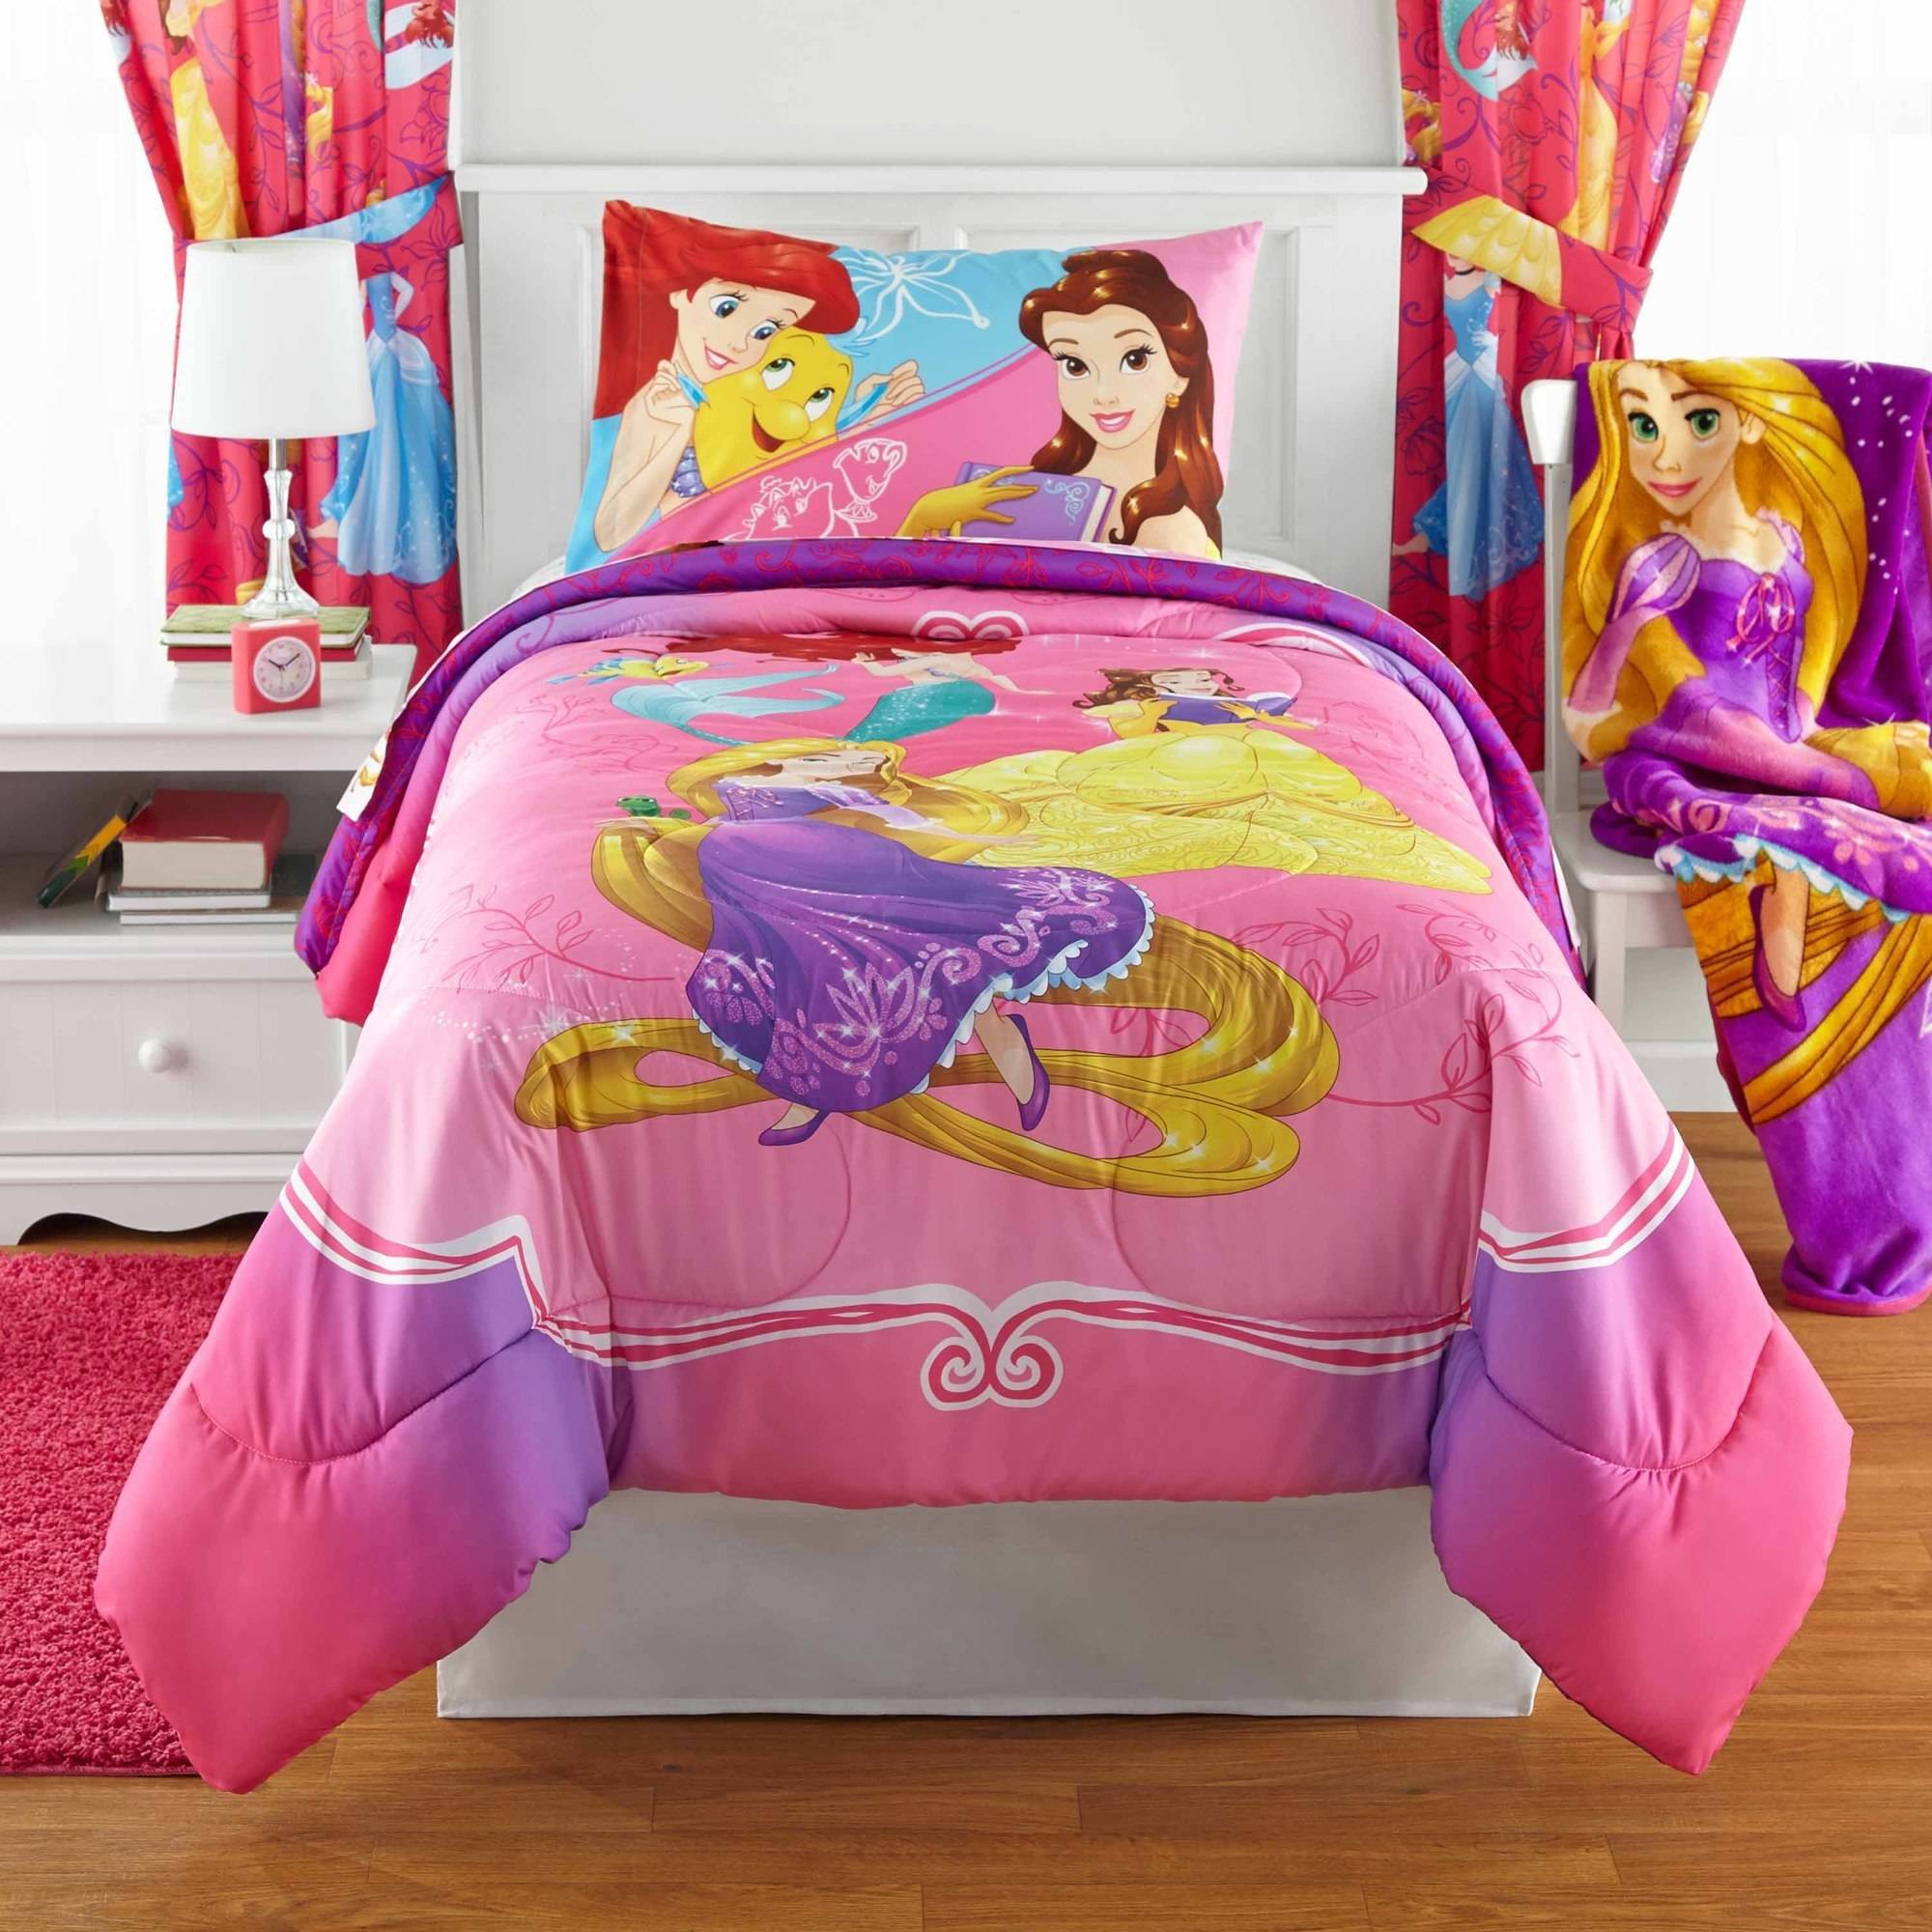 disney s princess bedazzling